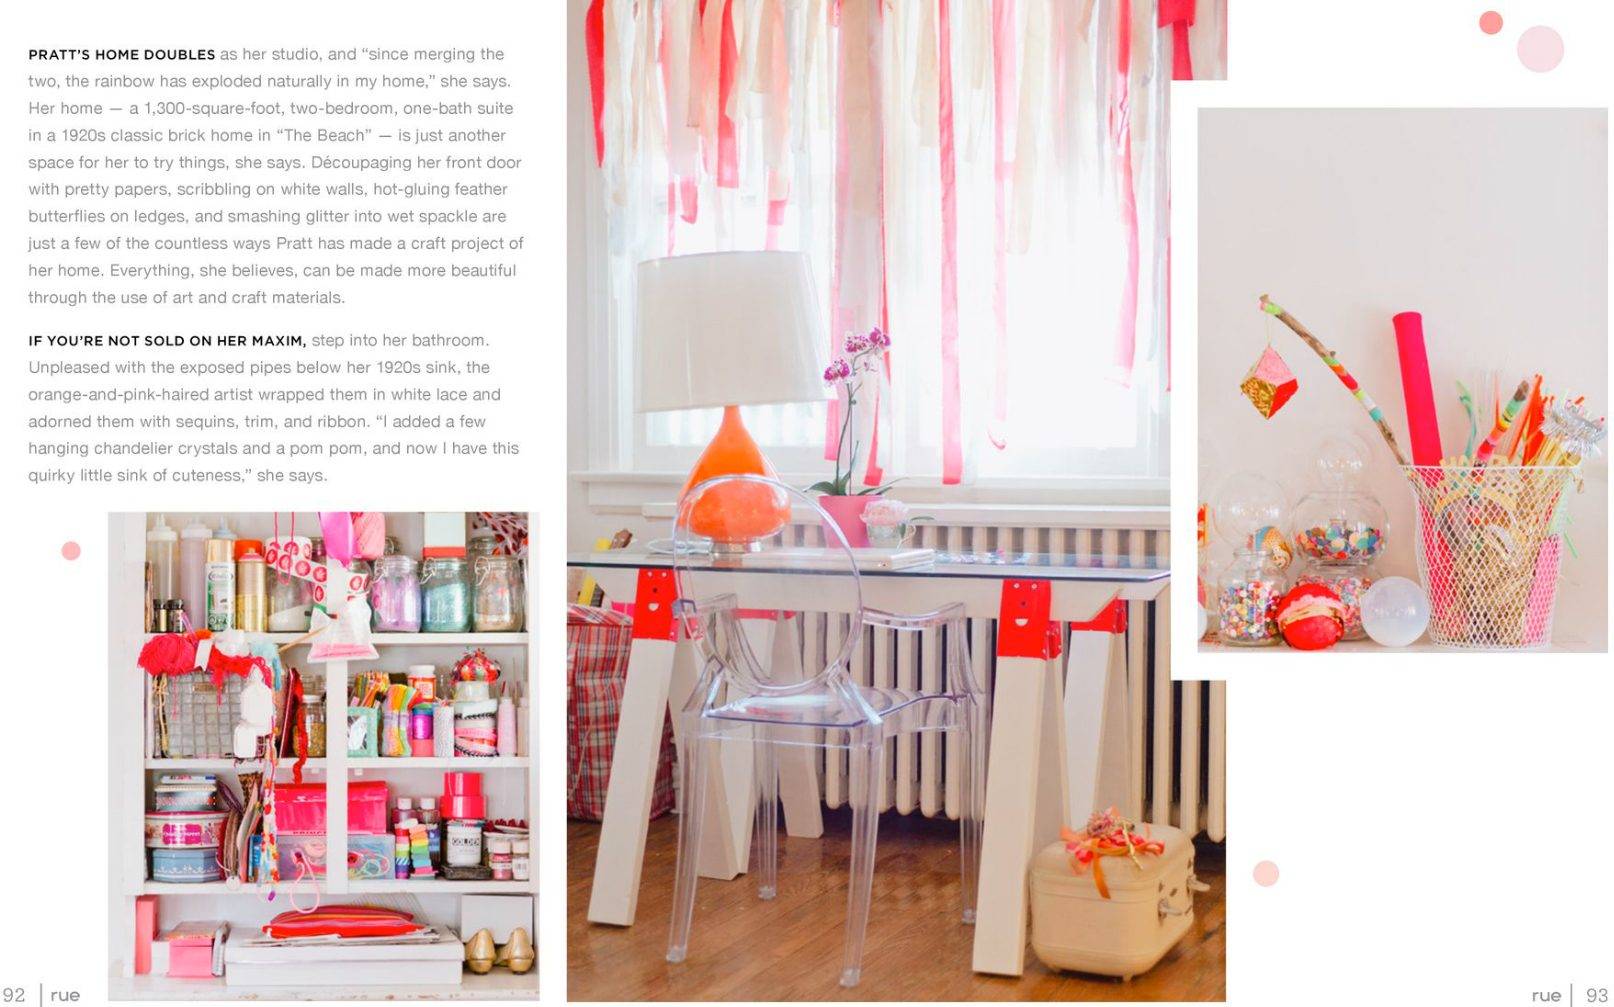 tara mcmullen photography tiffany pratt's home in rue magazine rue magazine color issue tiffany pink hair glitter suite-3